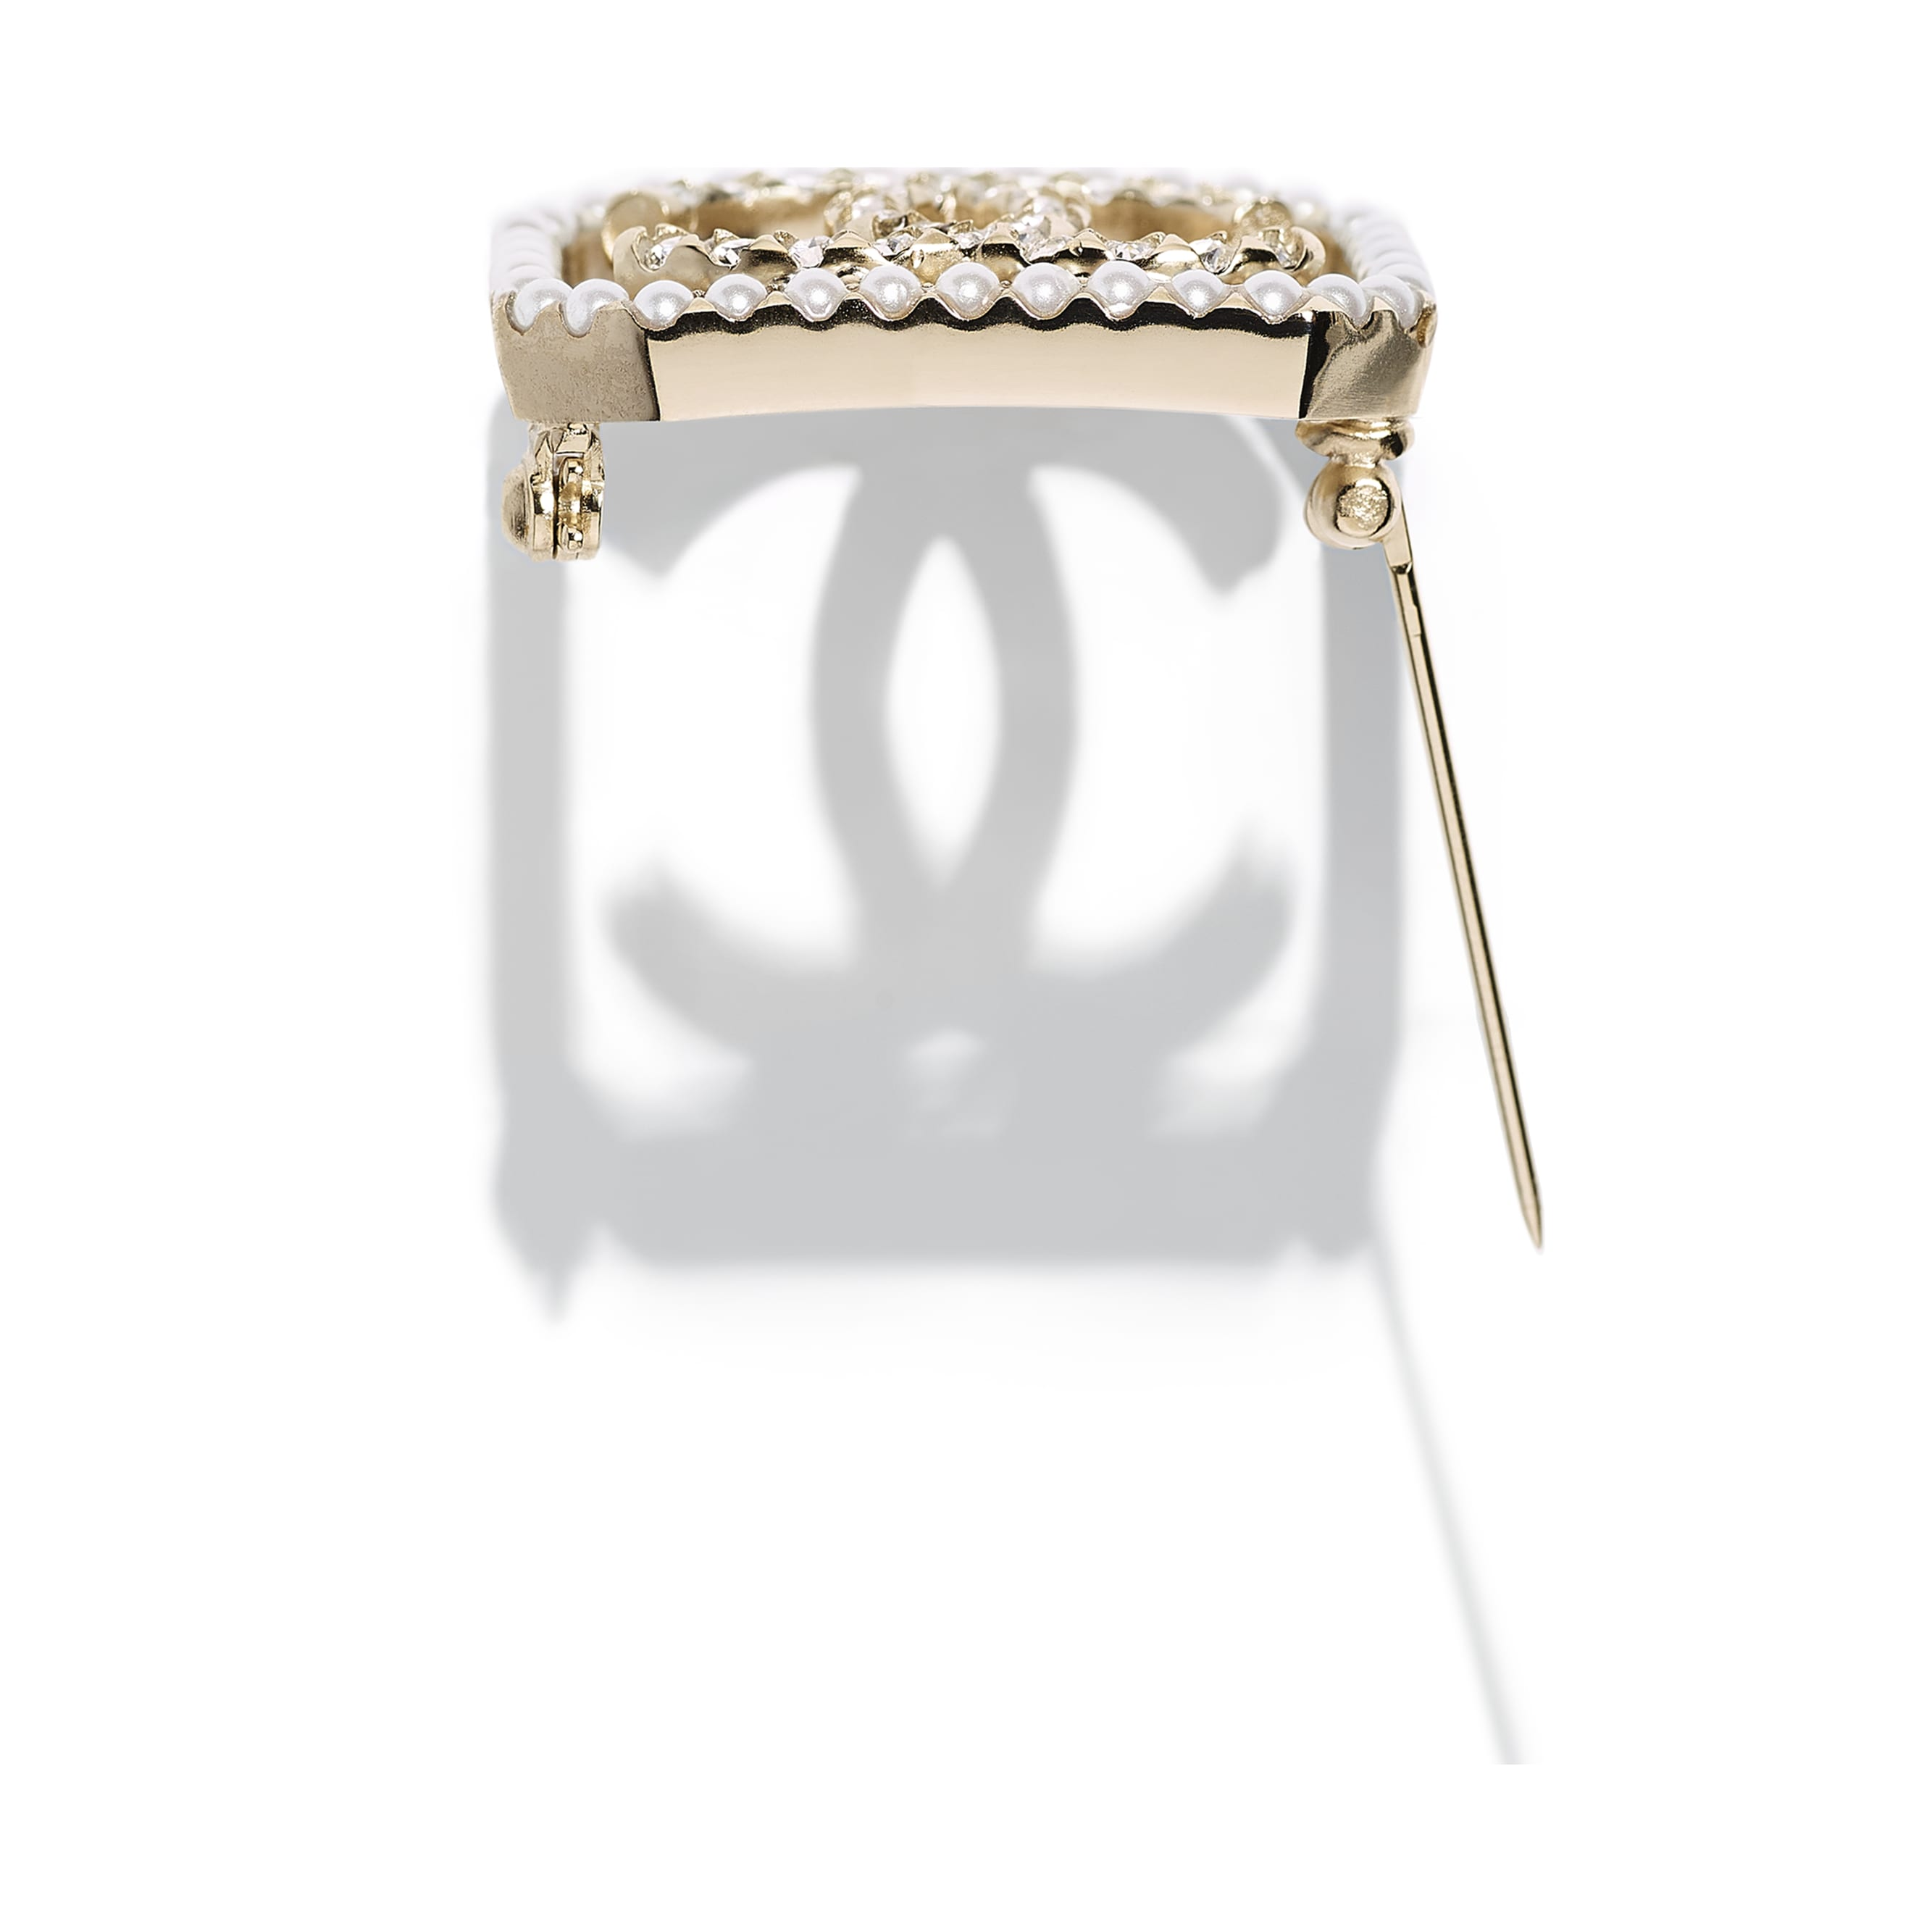 Brooch - Gold, Pearly White & Crystal - Metal, Imitation Pearls & Strass - CHANEL - Alternative view - see standard sized version